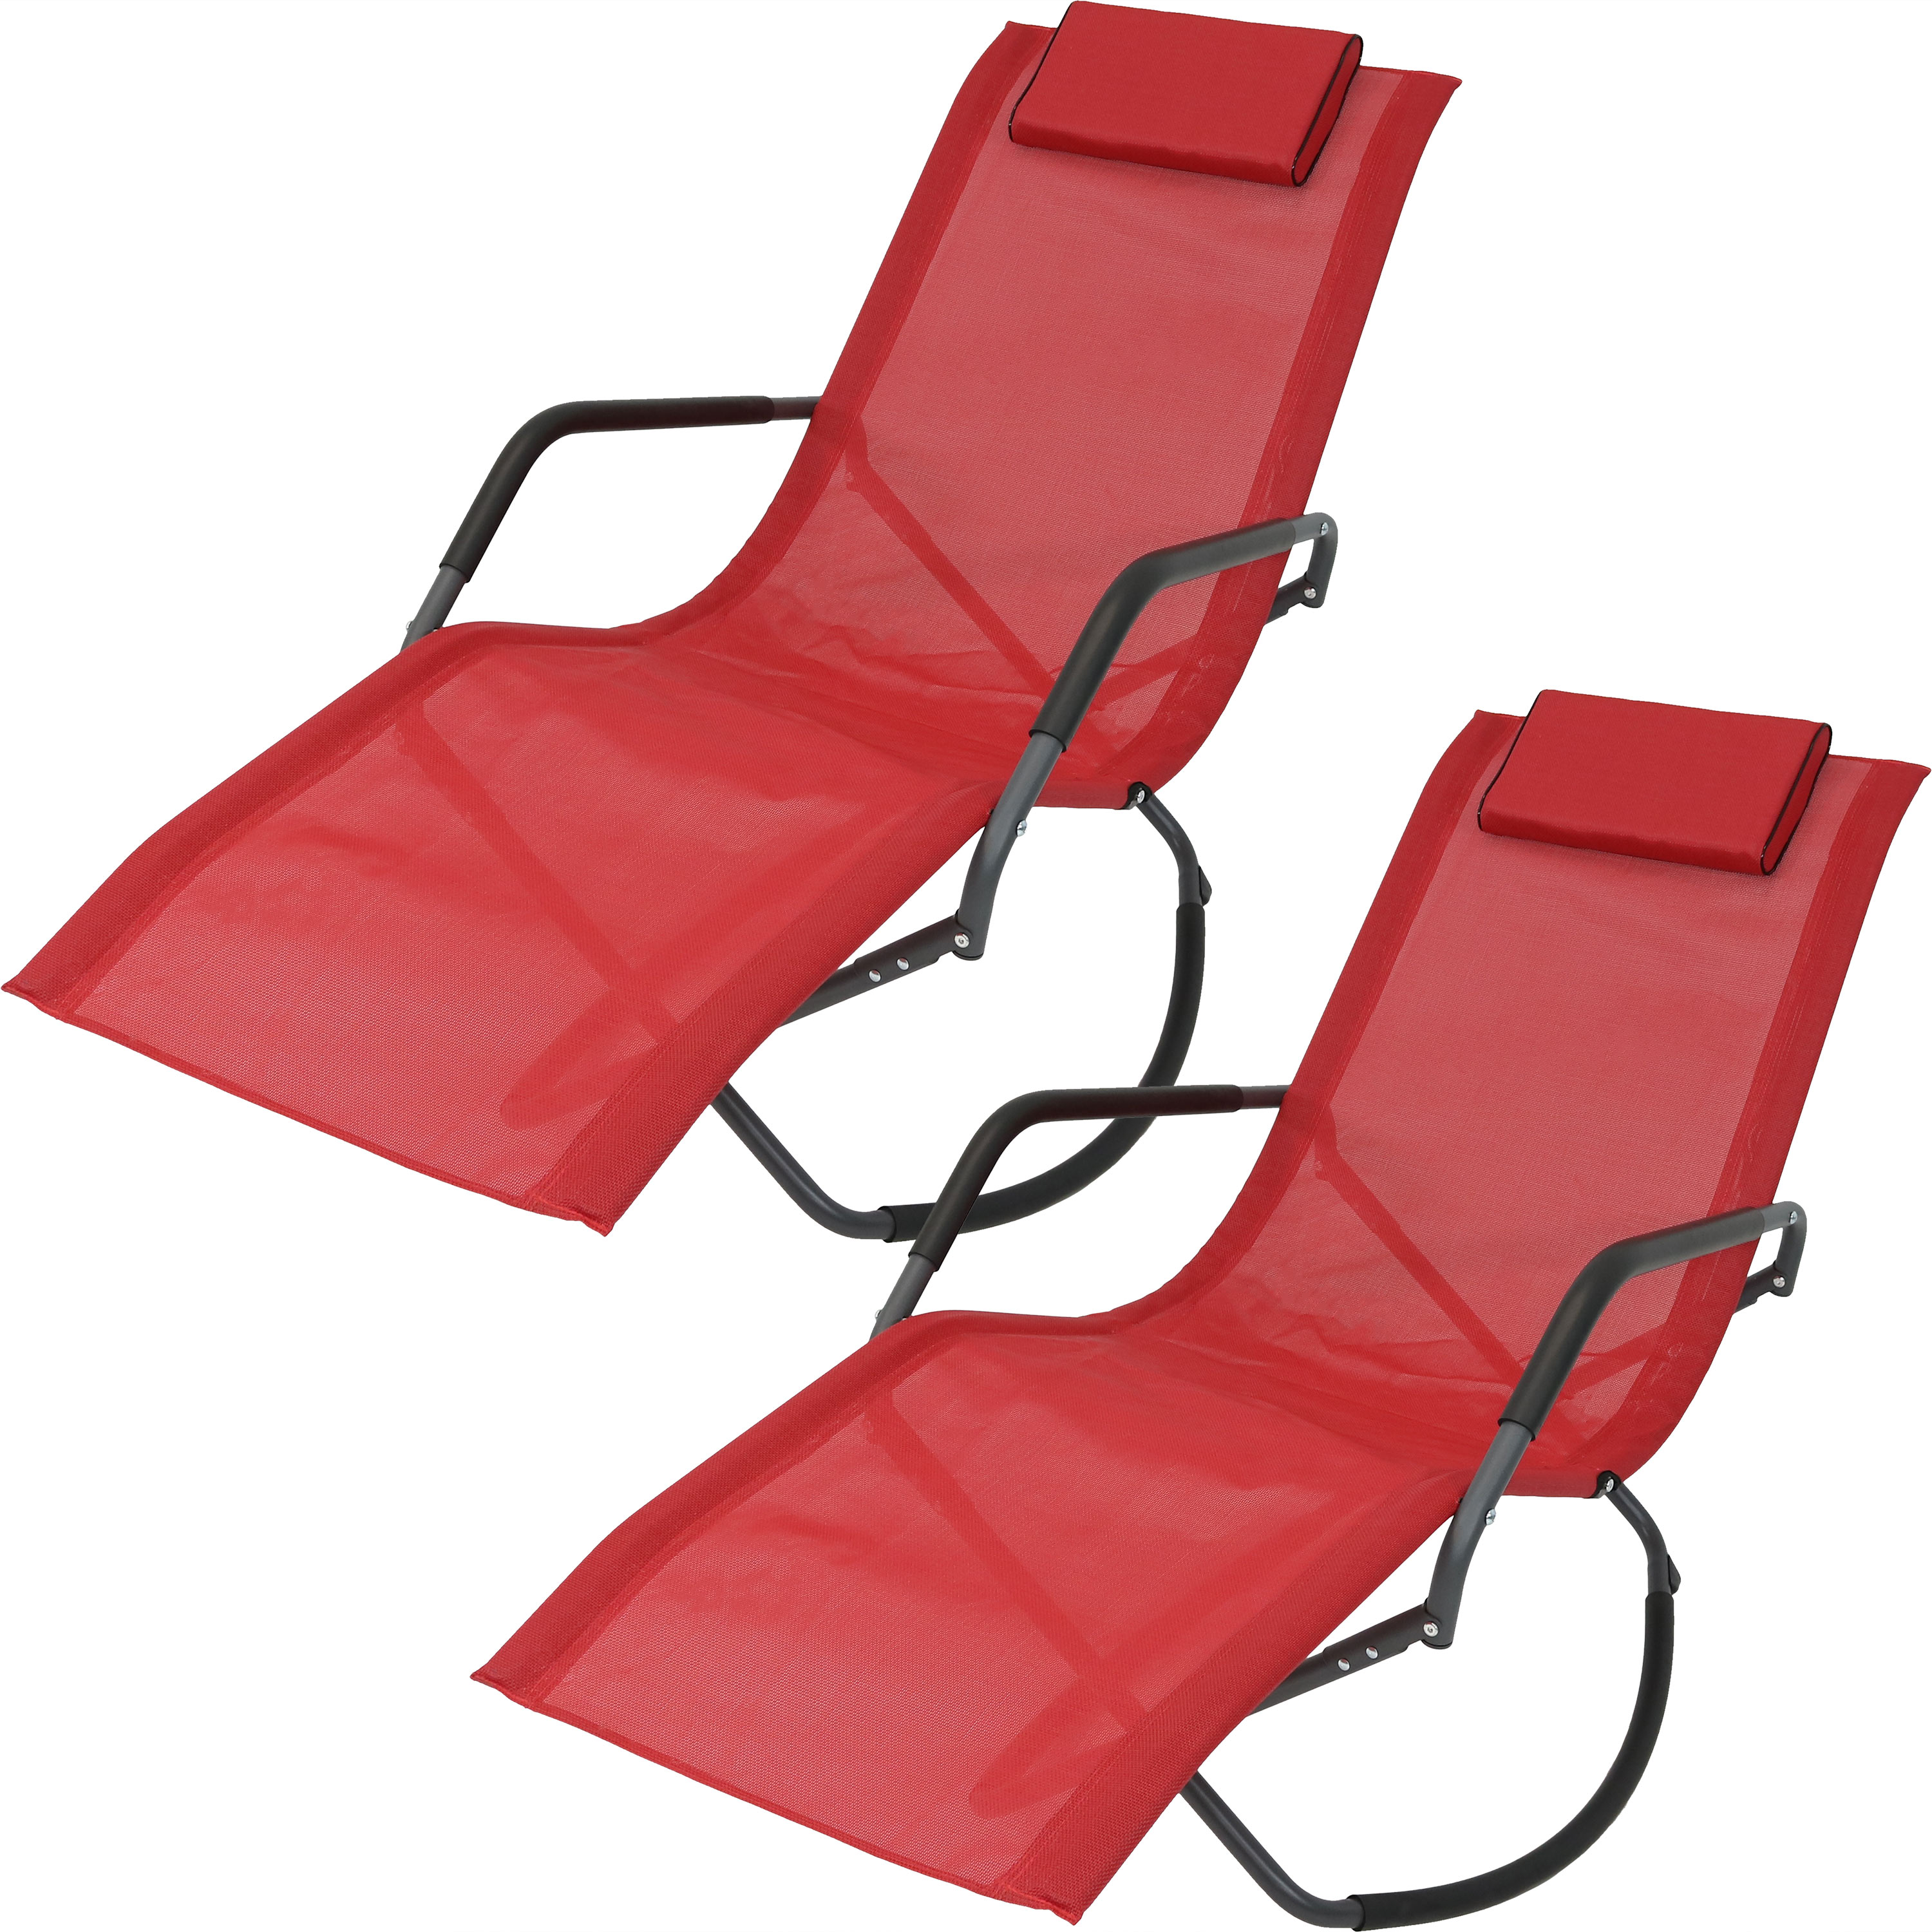 Rocking Chaise Lounge Chair Headrest Pillow Folding Patio Lounger Red Photo